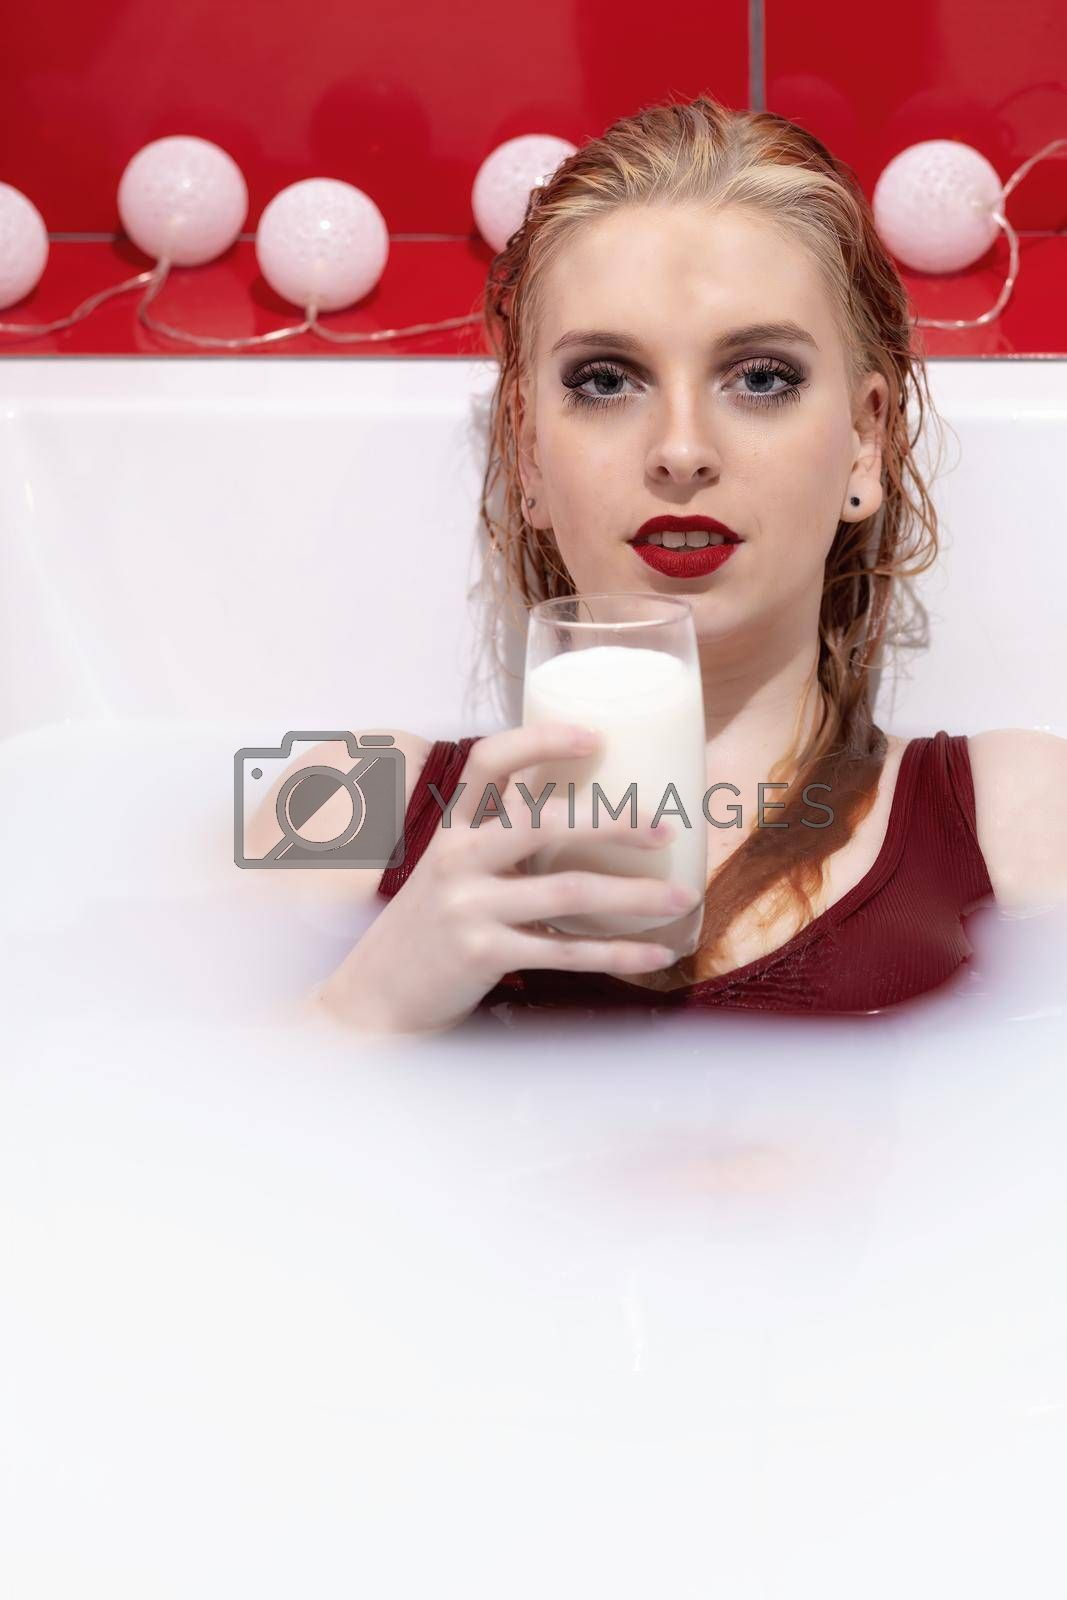 Royalty free image of Beautiful redhead young woman with red lips lying in milk bath is holding glass of milk. by Frank11